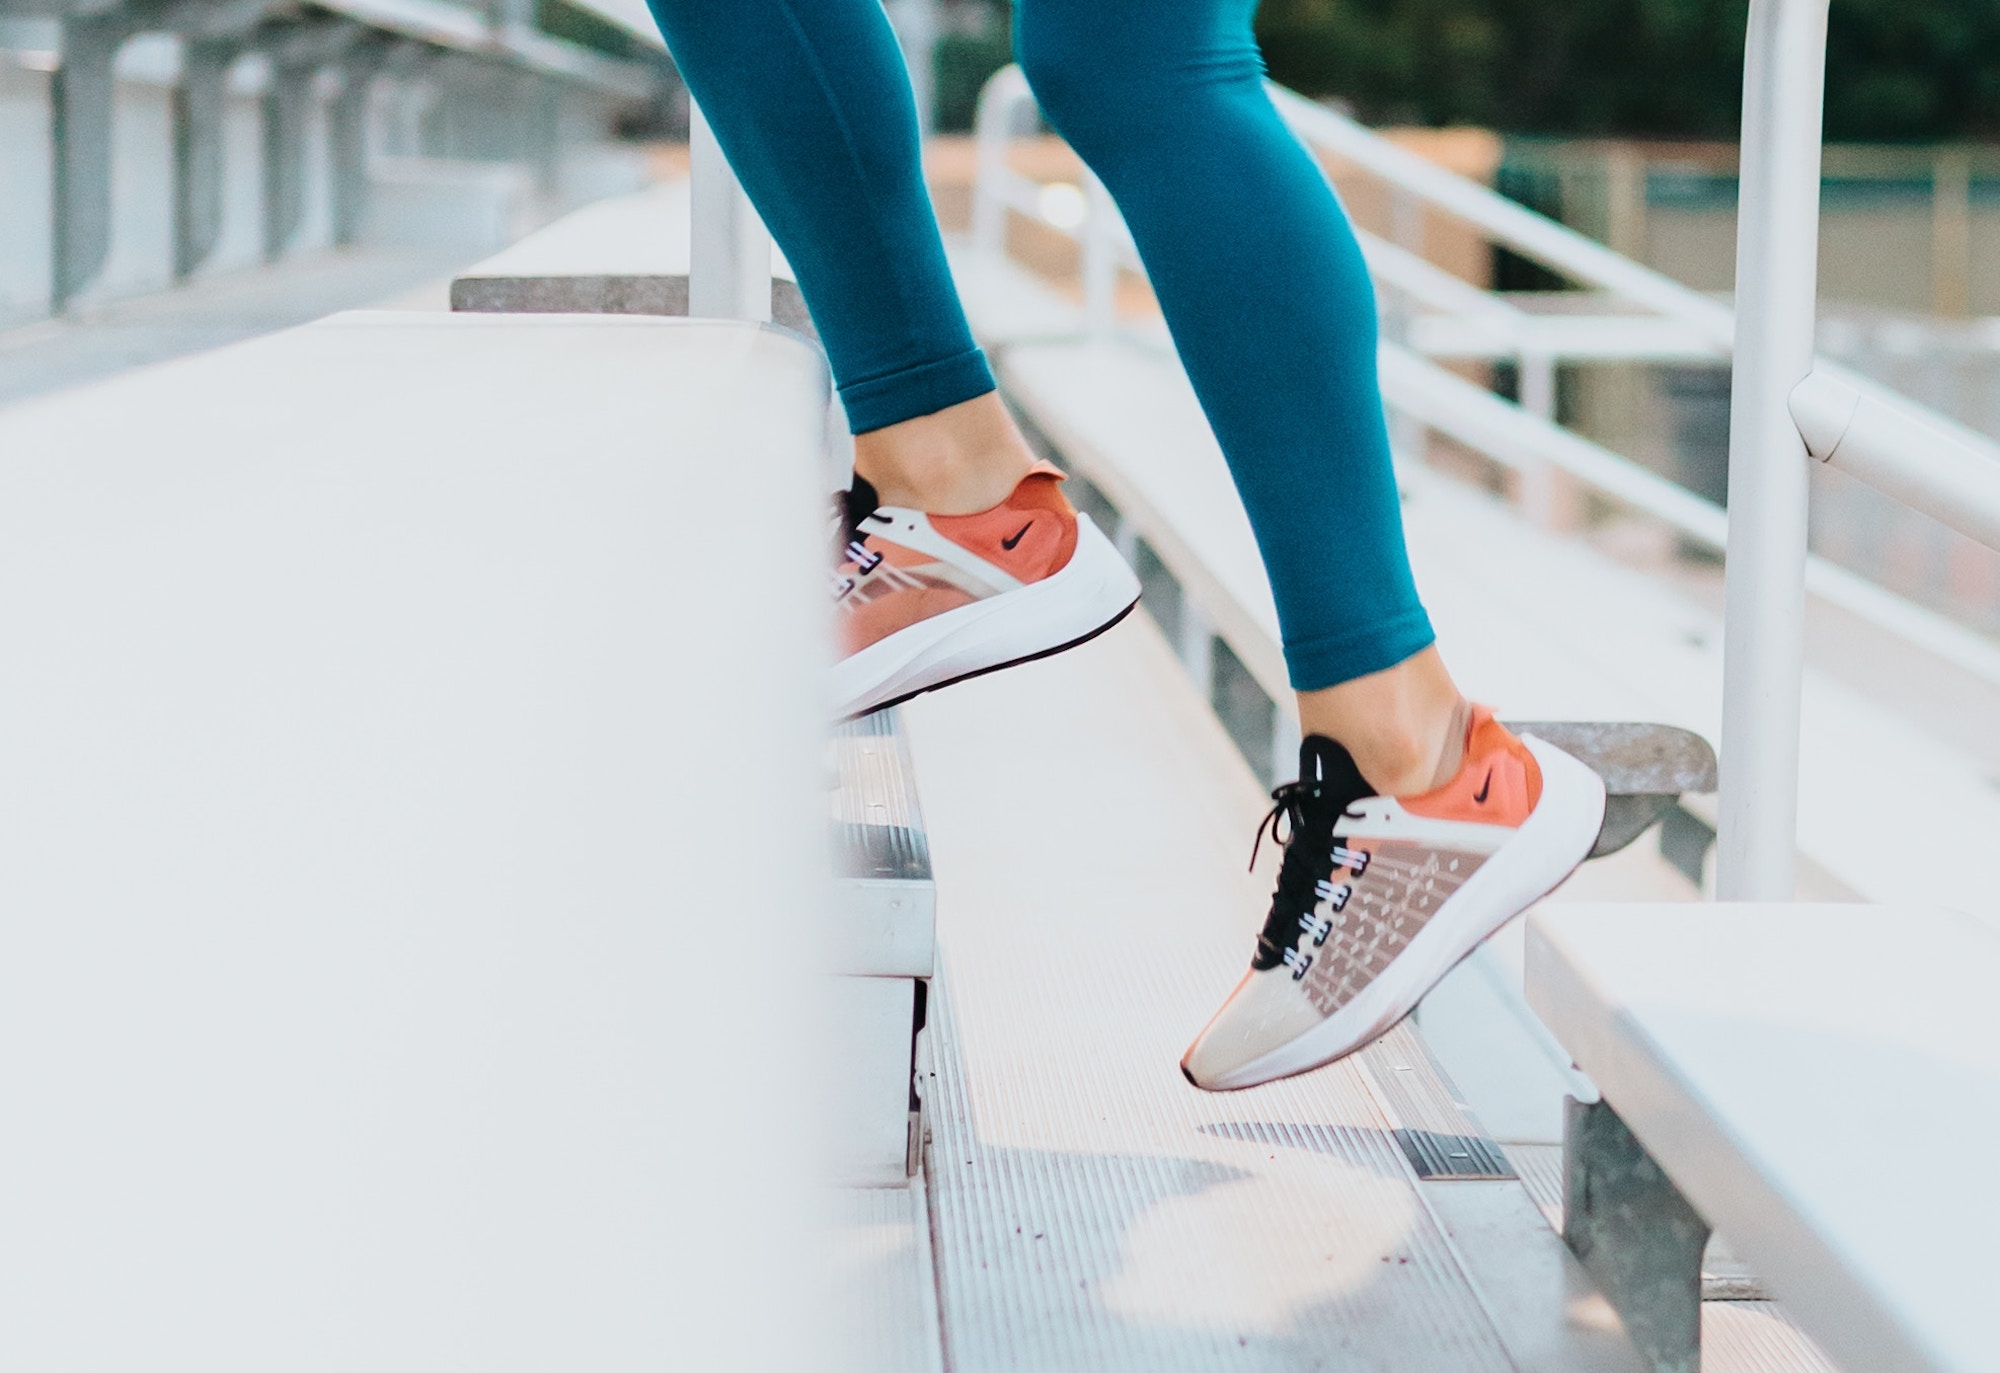 This picture shows a woman running up bleacher stairs wearing nike sneakers and teal leggings. This is a photo abaout fitness and performance footwear